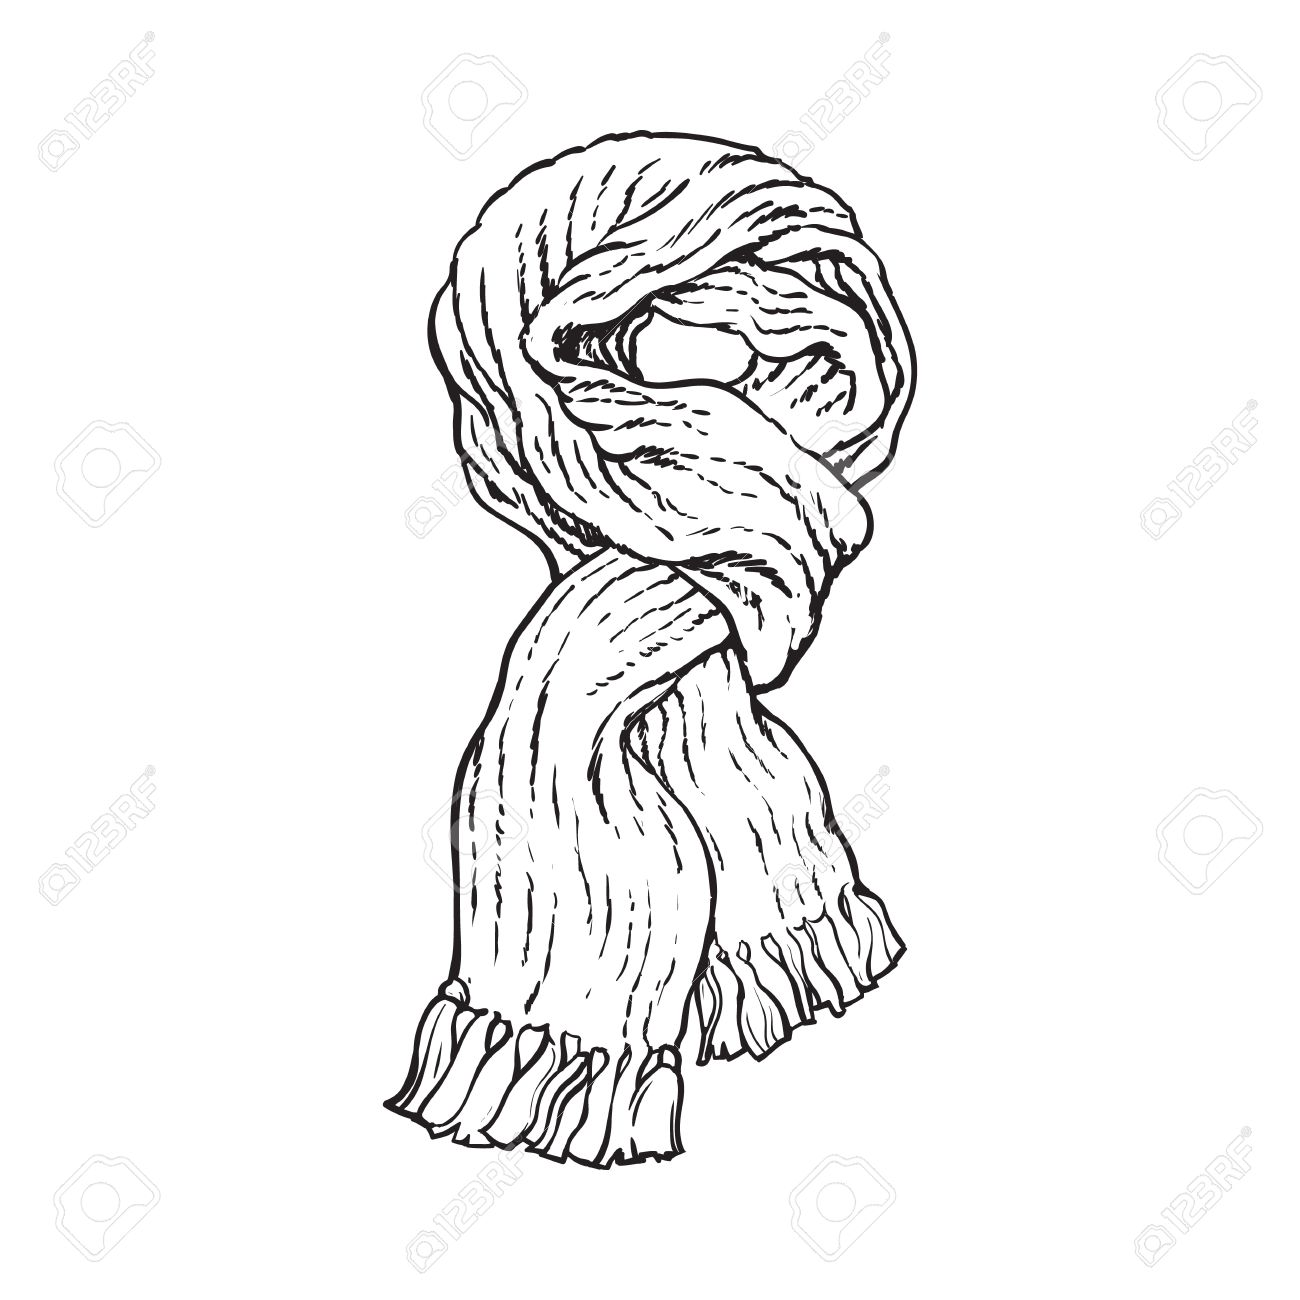 Bright Slip Knotted Winter Knitted Scarf With Tassels Sketch Style Vector Illustrations Isolated On White Background Hand Drawn Fluffy Woolen Scarf Tied In Slip Knot Winter Accessory Royalty Free Cliparts Vetores E